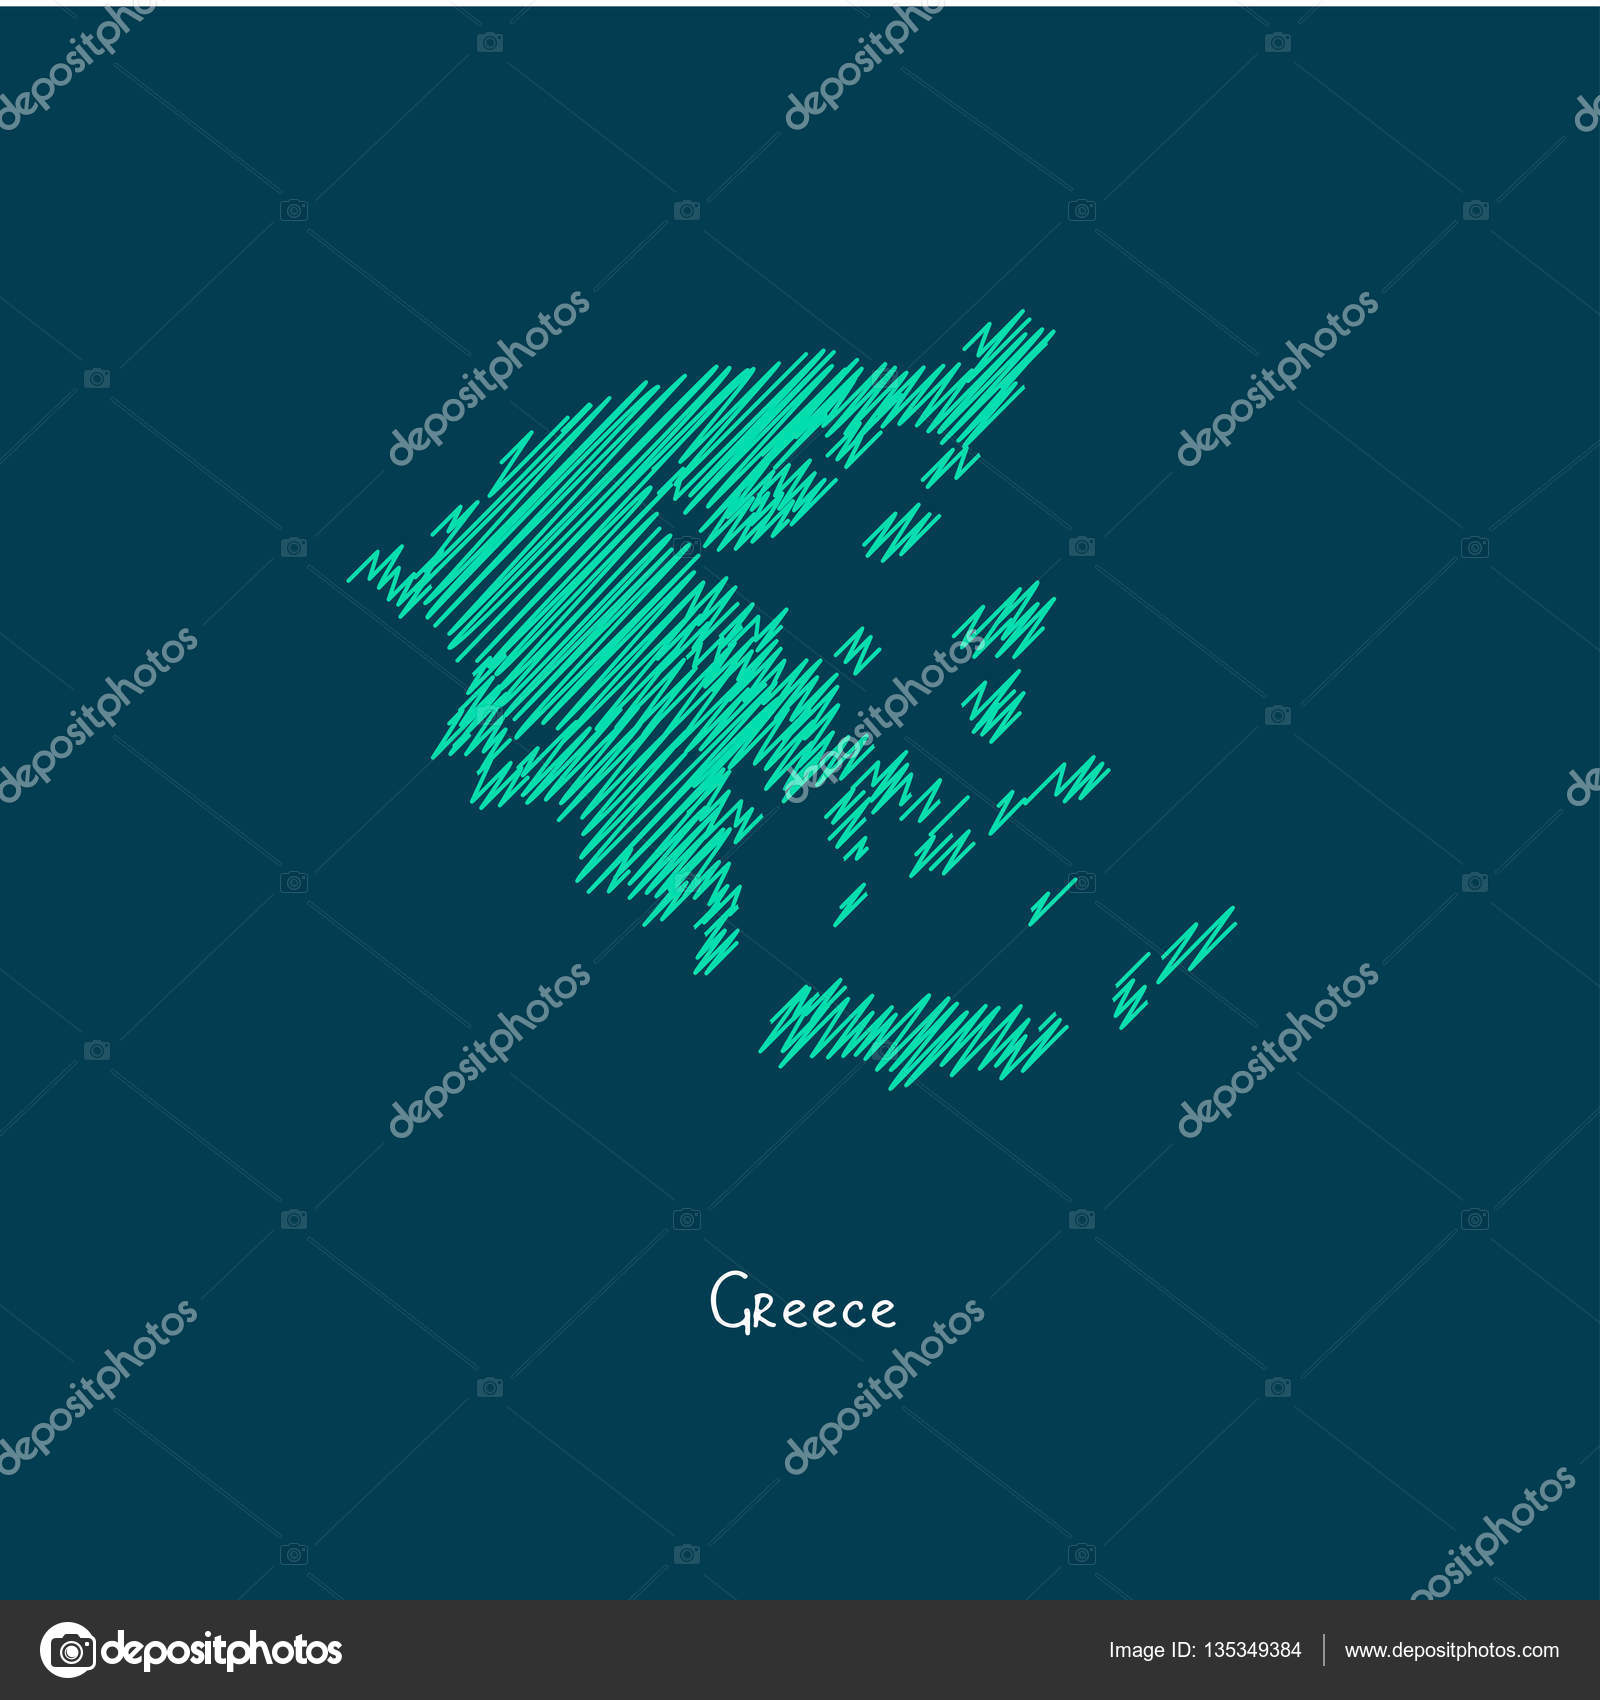 World map illustration greece stock vector ibrandify 135349384 world map illustration greece stock vector 135349384 gumiabroncs Gallery